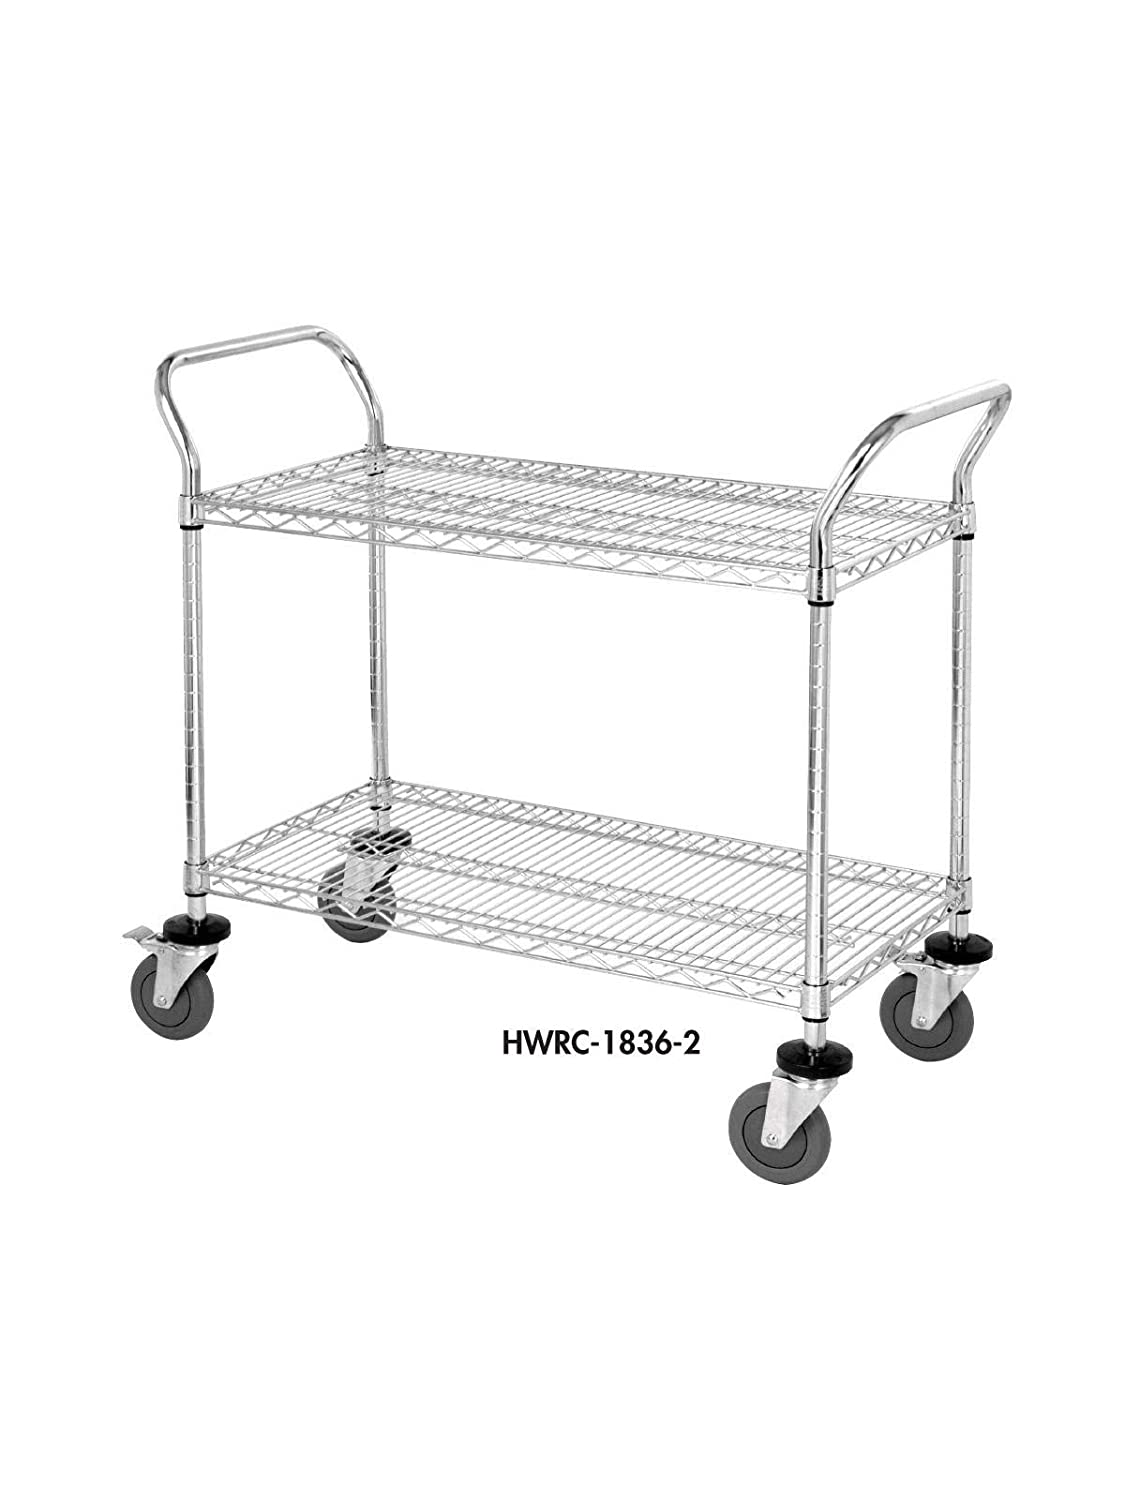 Quantum Storage Systems WRC-1842-3 3-Tier Wire Utility Cart, 3 Wire Shelves, 5 Stem Casters, Chrome Finish, 37-1 2 Height x 18 Width x 42 Length